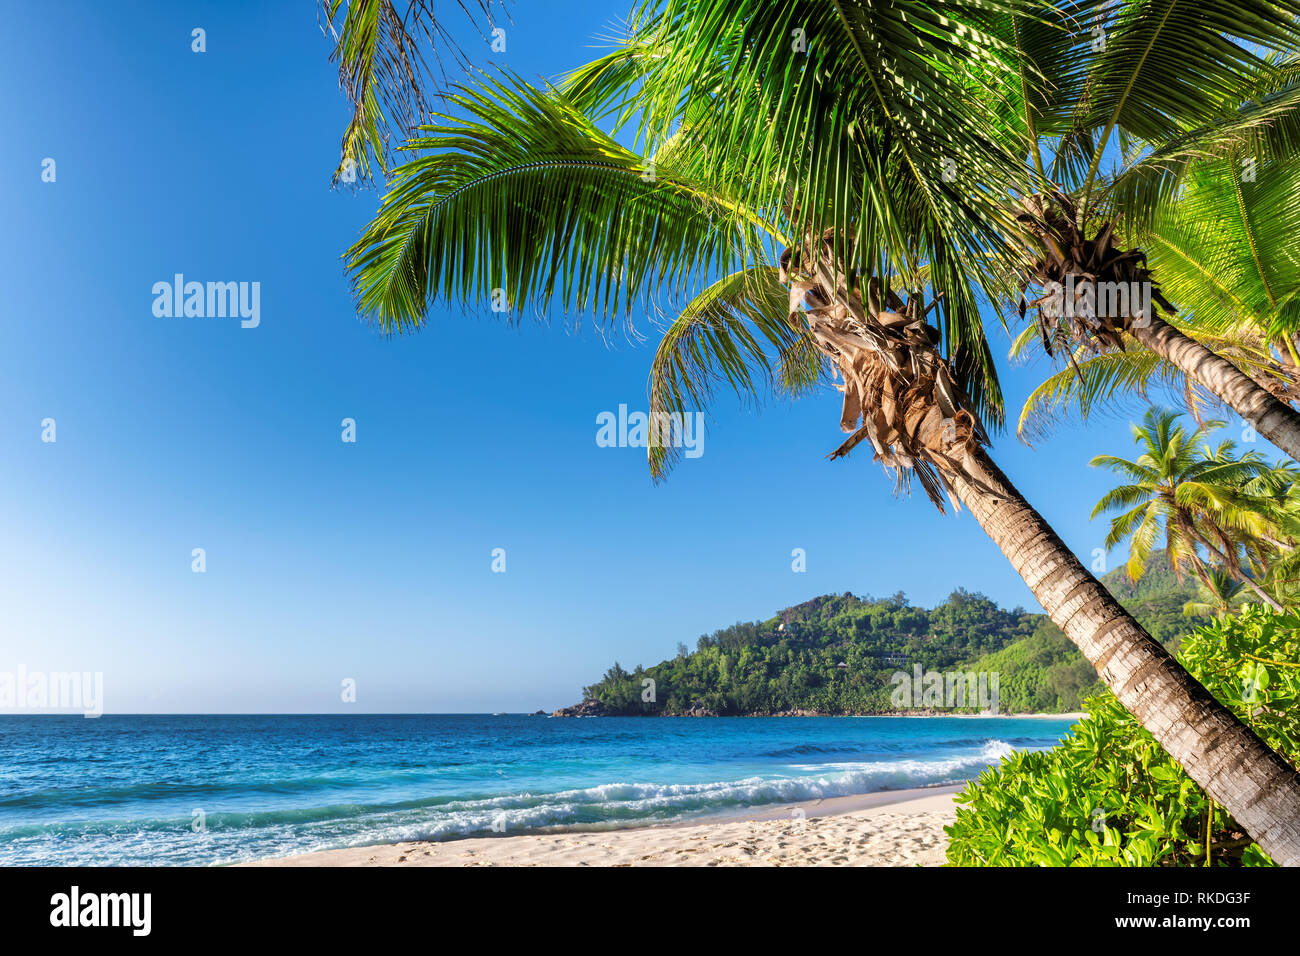 Coconut palm over sandy beach and tropical sea in Jamaica paradise island. - Stock Image